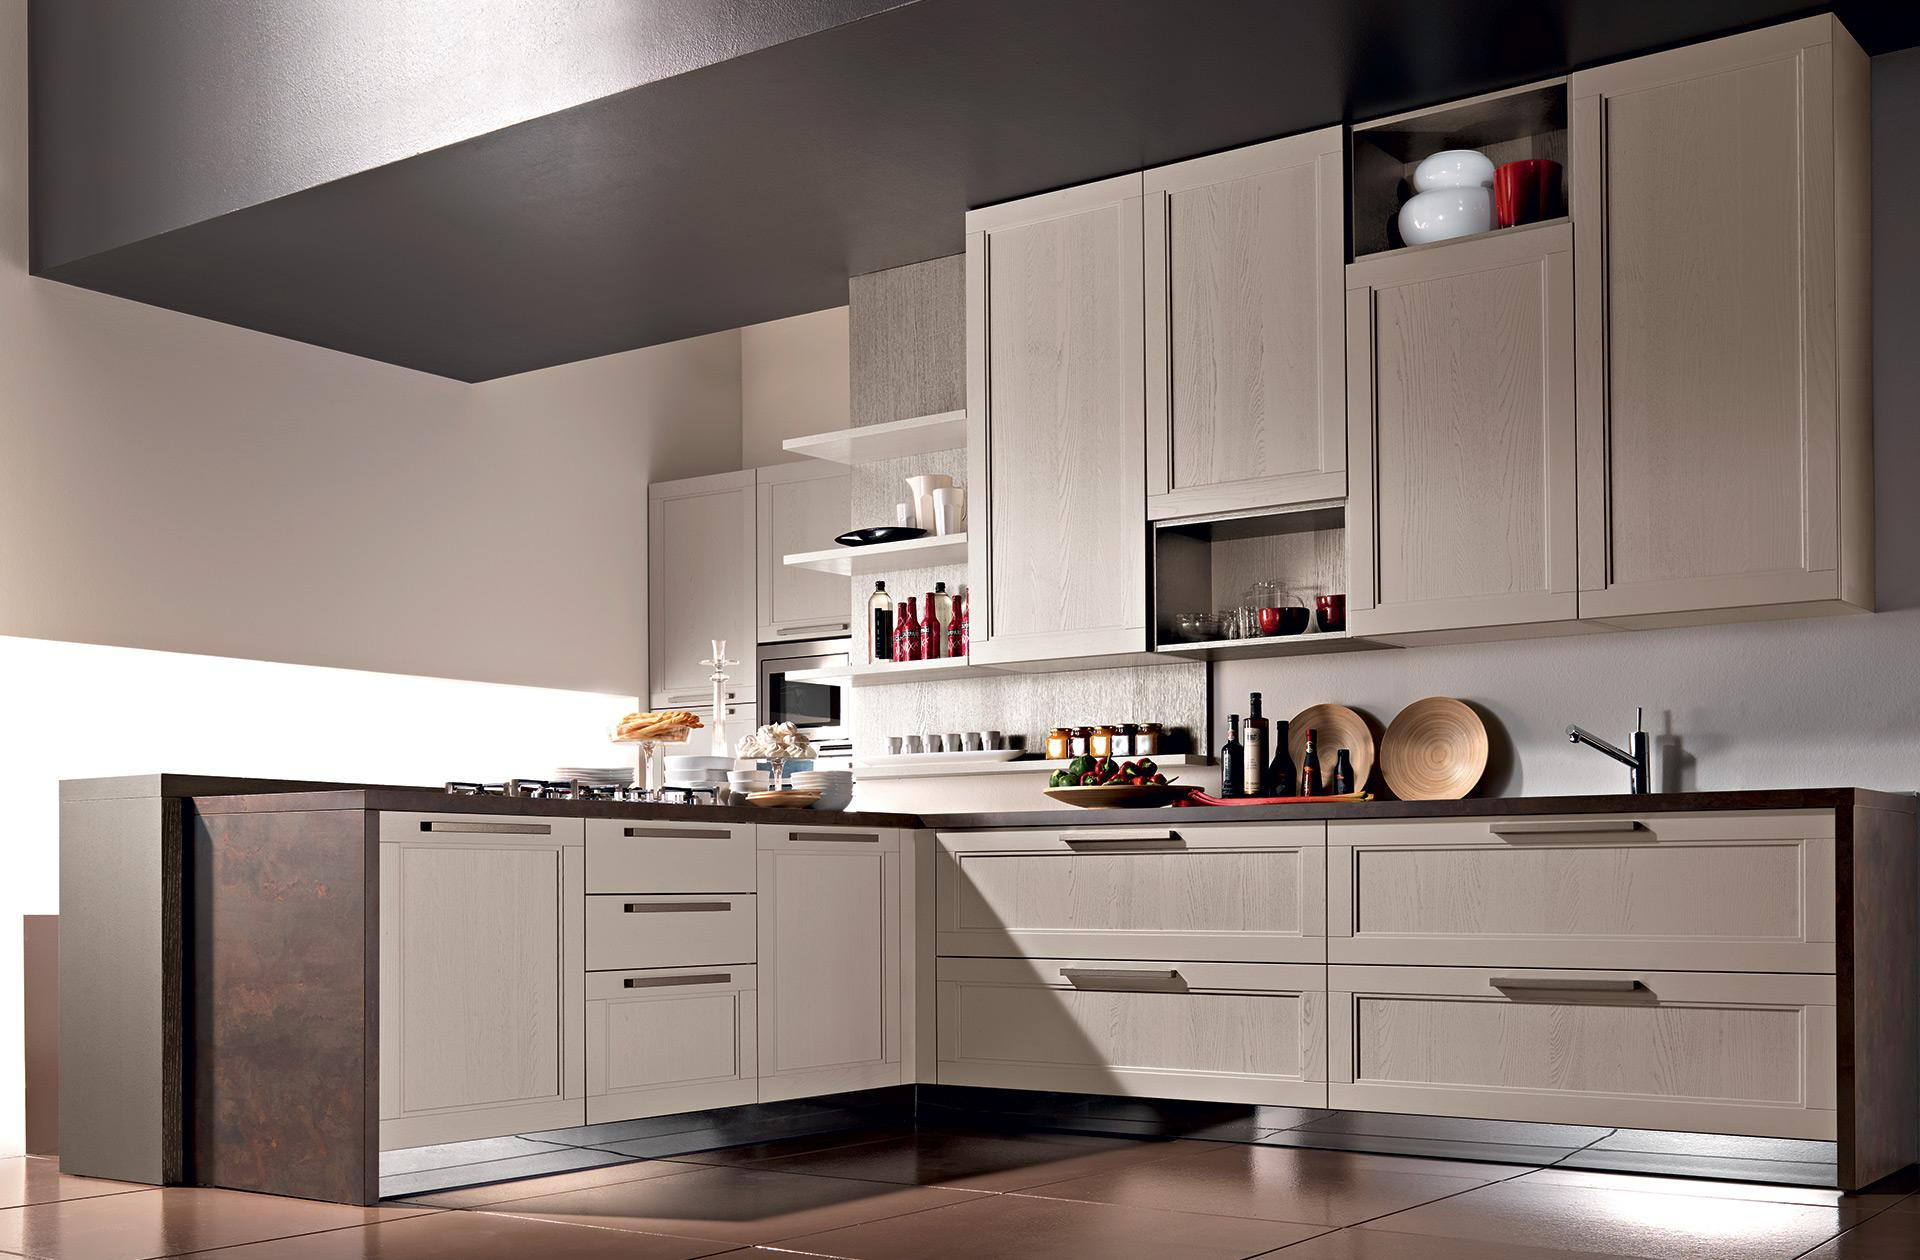 Cucine on line trendy kitchen decorating outlet veneta for Cucine on line outlet